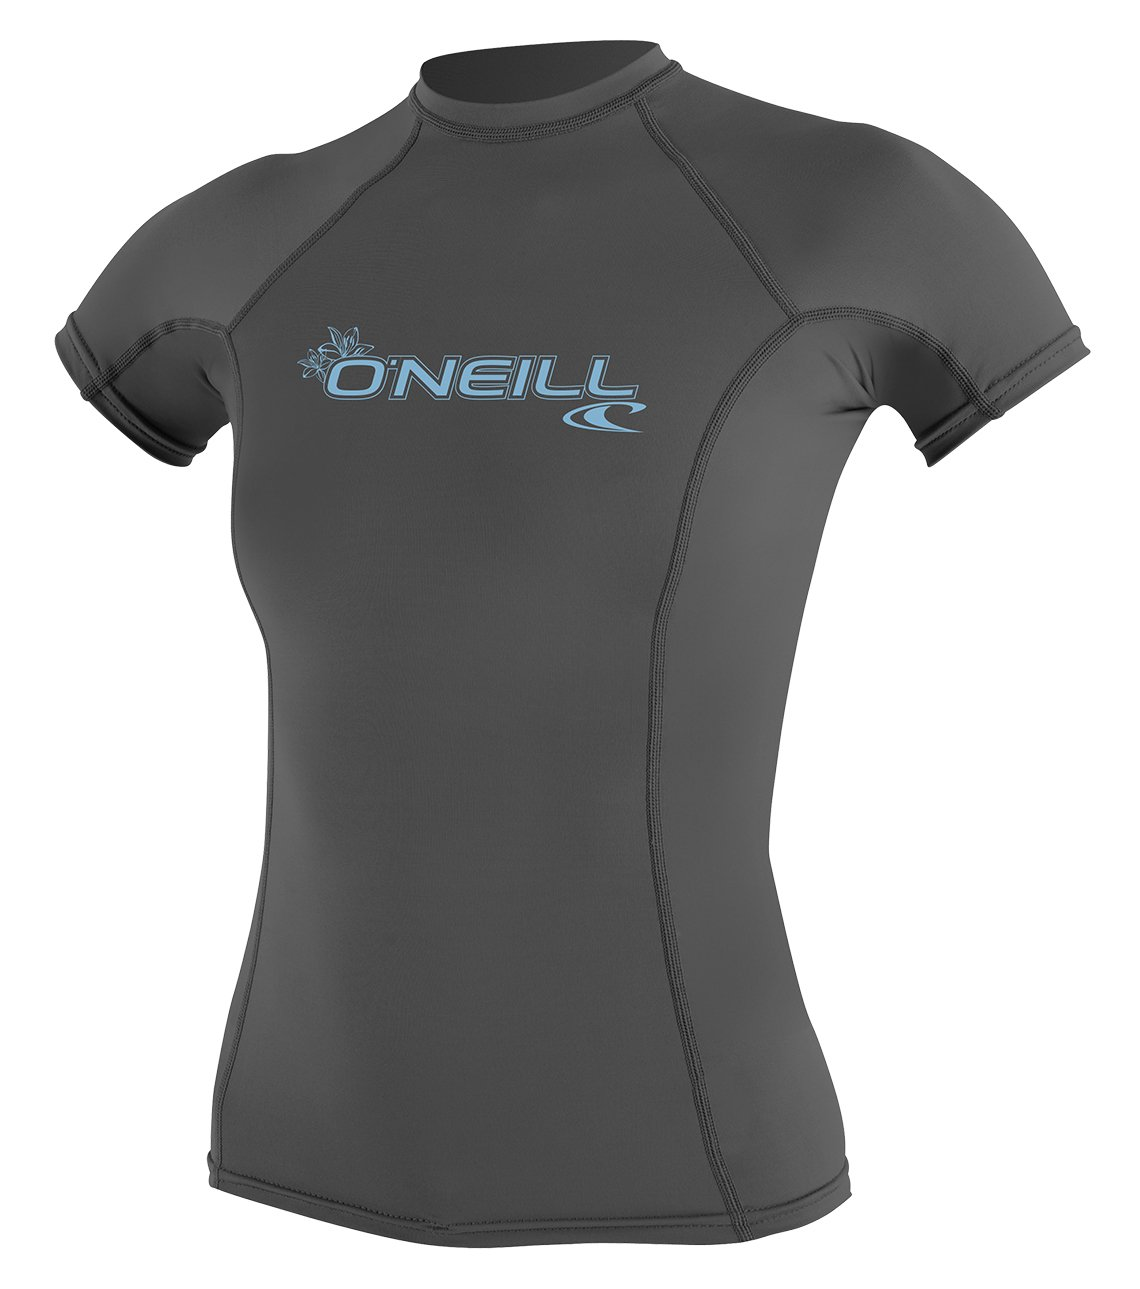 O'Neill Women's Basic 50+ Skins Short Sleeve Rash Guard, Graphite, X-Large by O'Neill Wetsuits